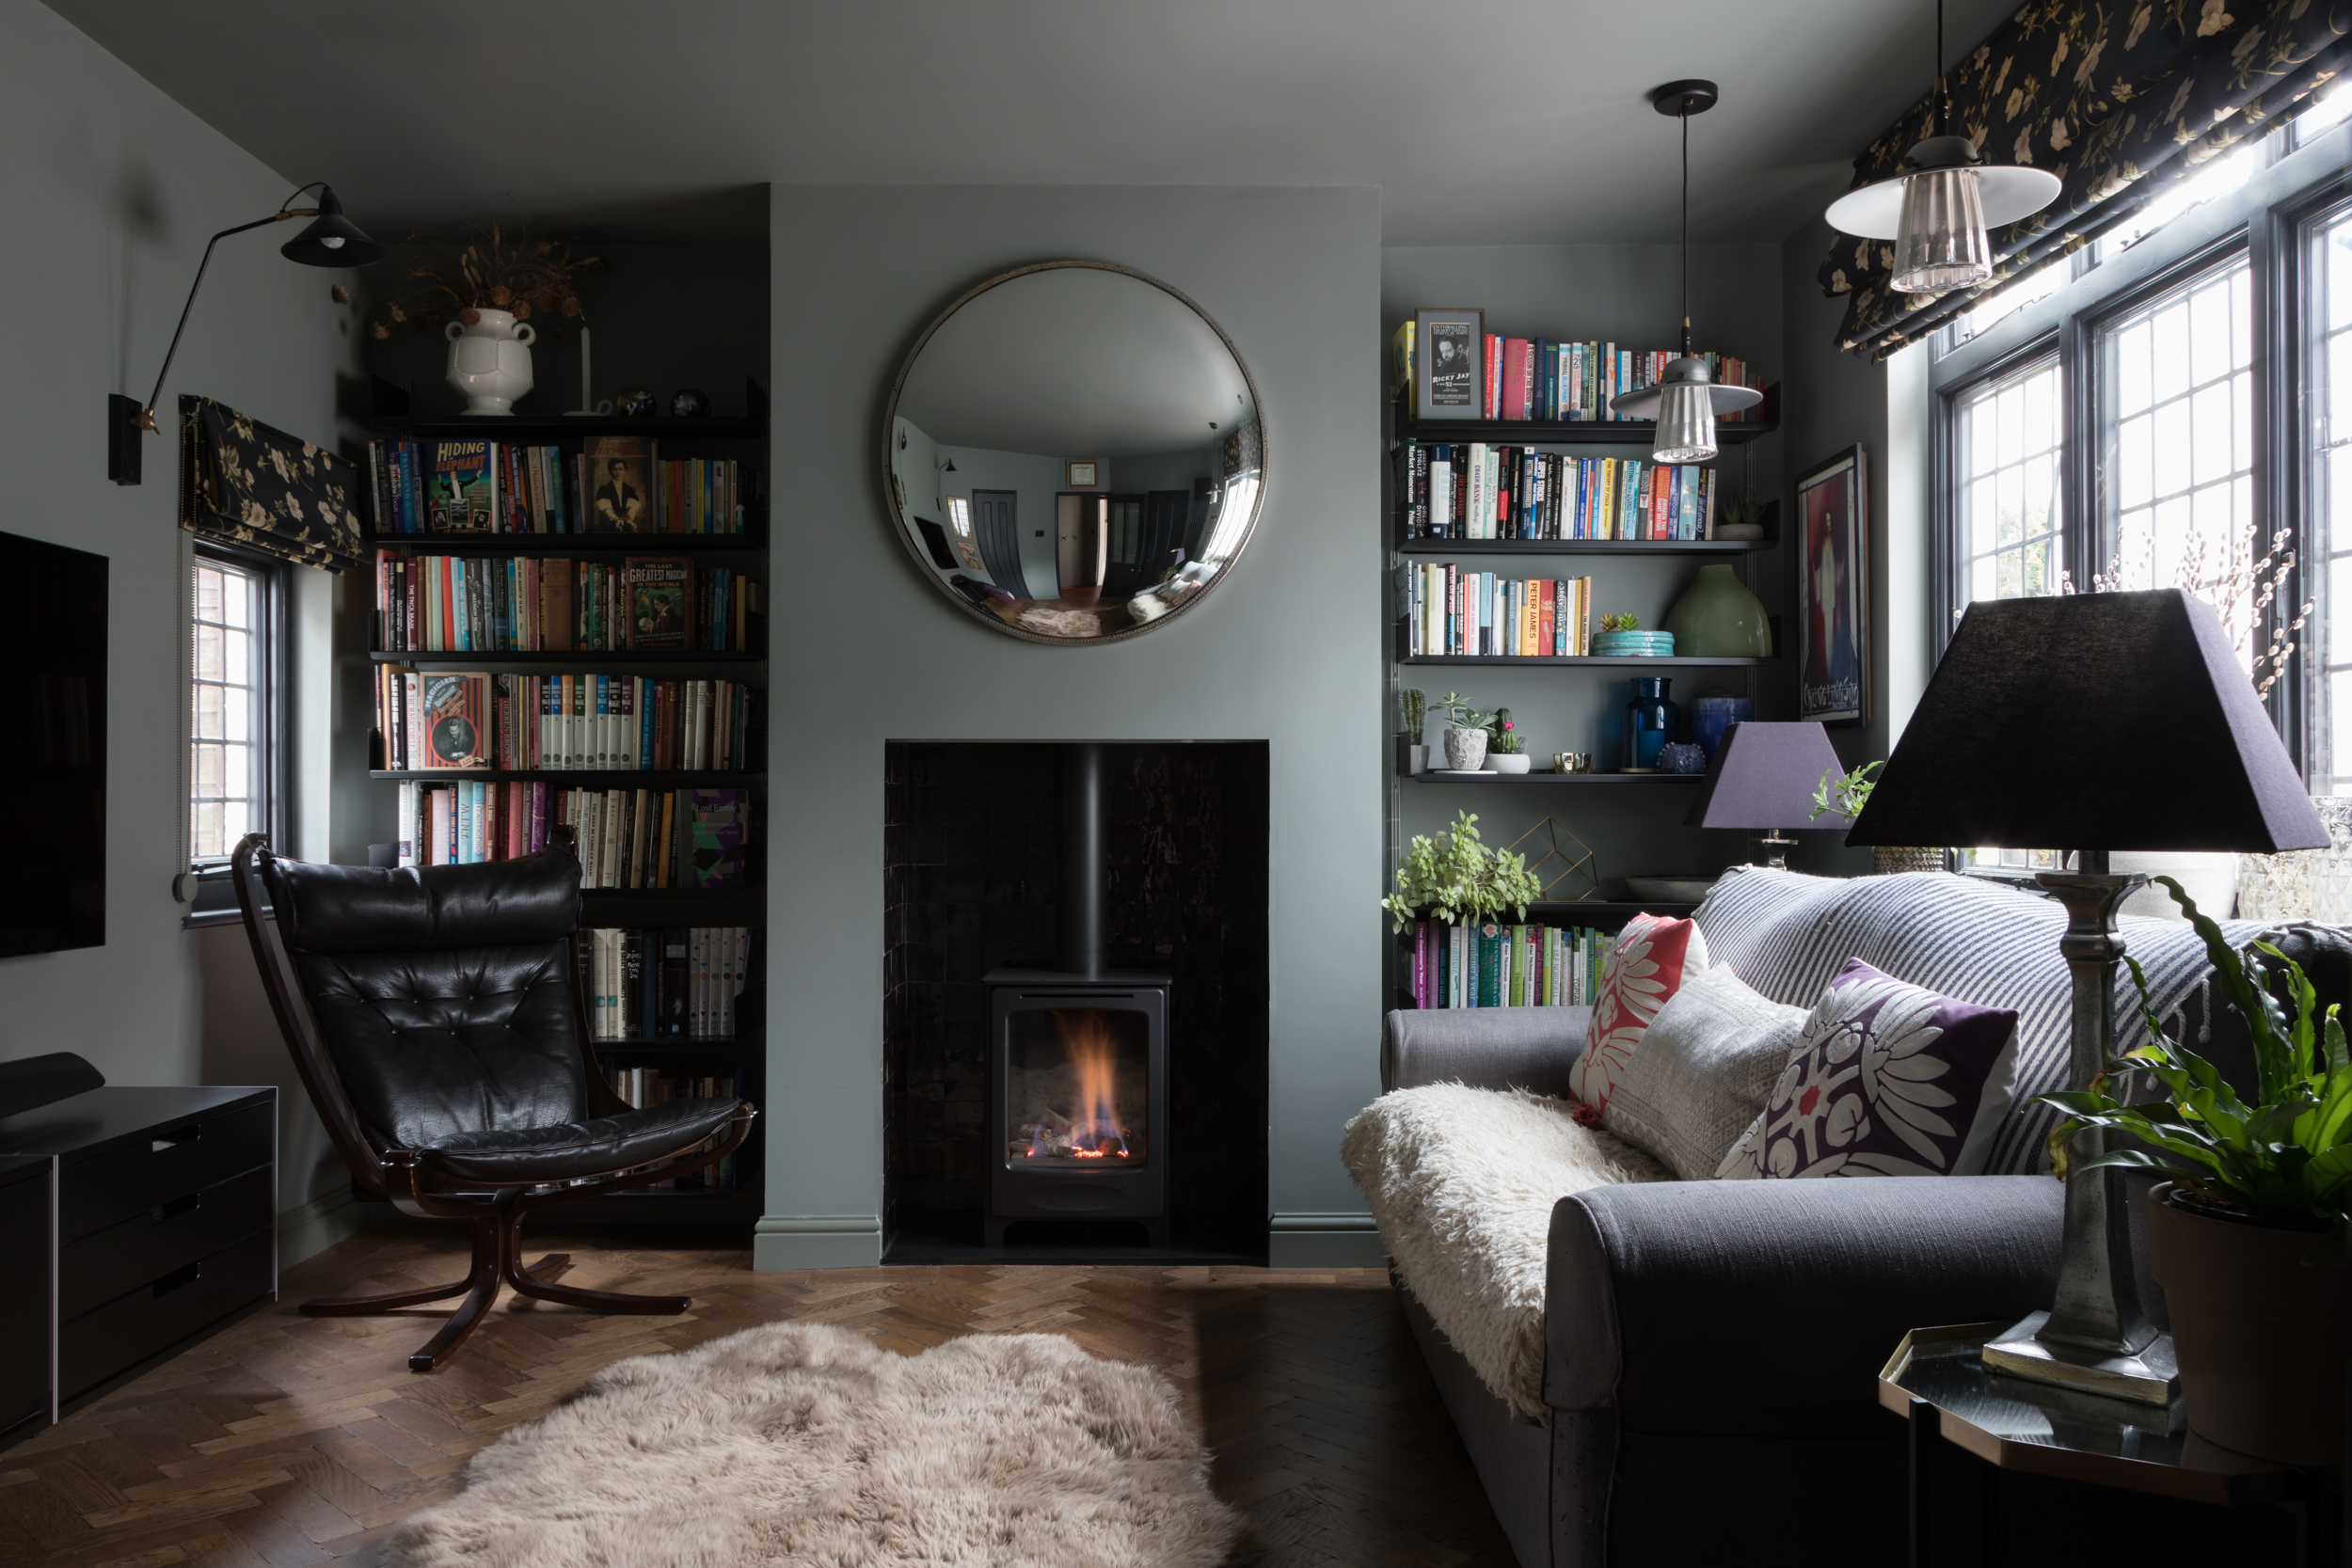 Paul Craig, Interior Photographer, Residential Photography, London, Living Room, Snug